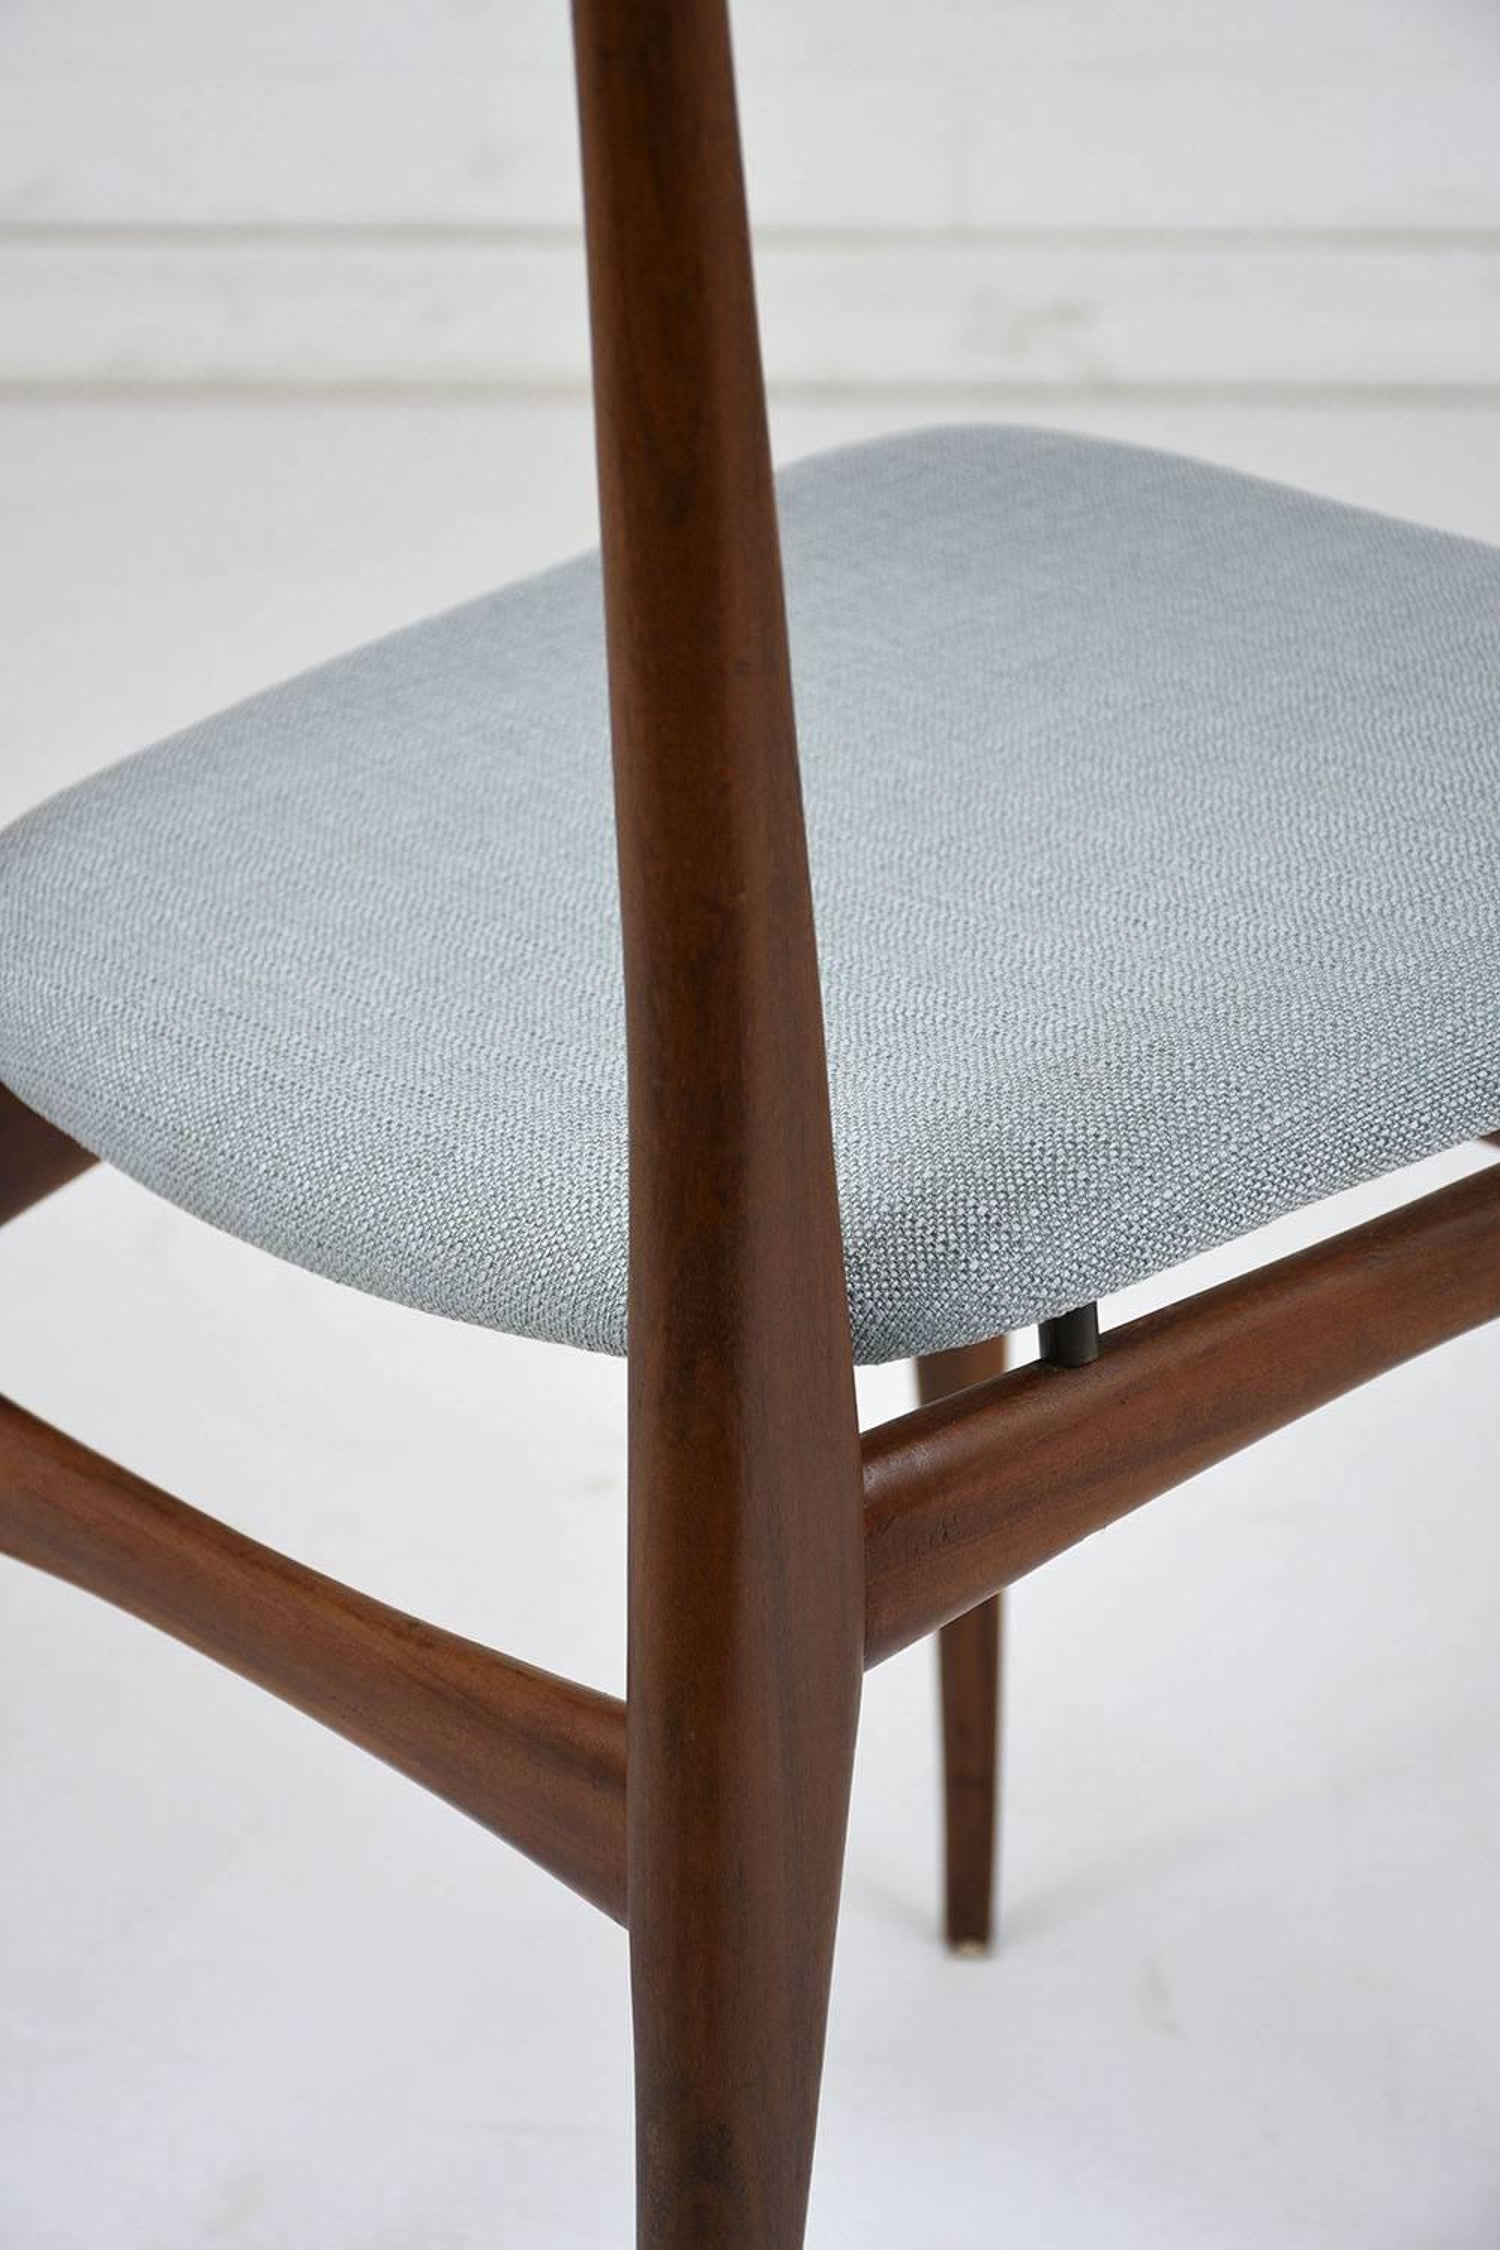 Set of Six Danish Dining Chairs, circa 1960 For Sale at 1stdibs